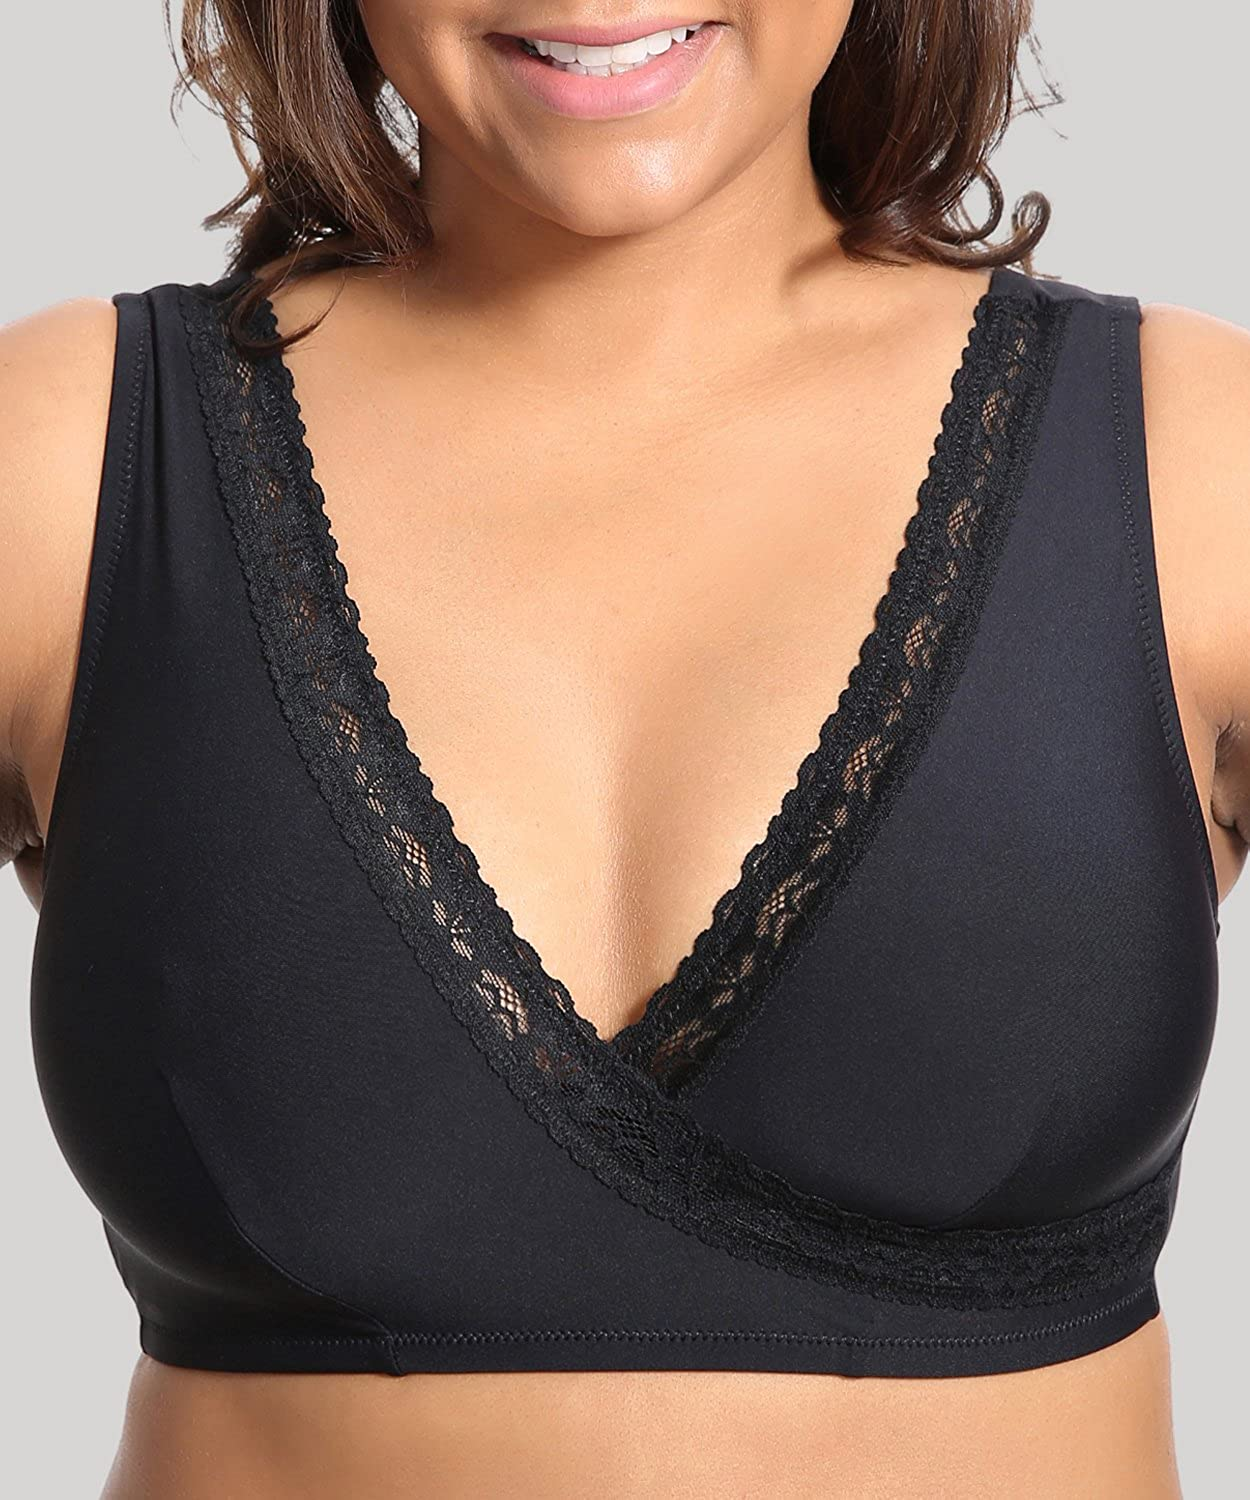 Delimira Womens Plus Size Soft Cup Comfort Wirefree Sleep Lace Bra Black 46 B//C//D